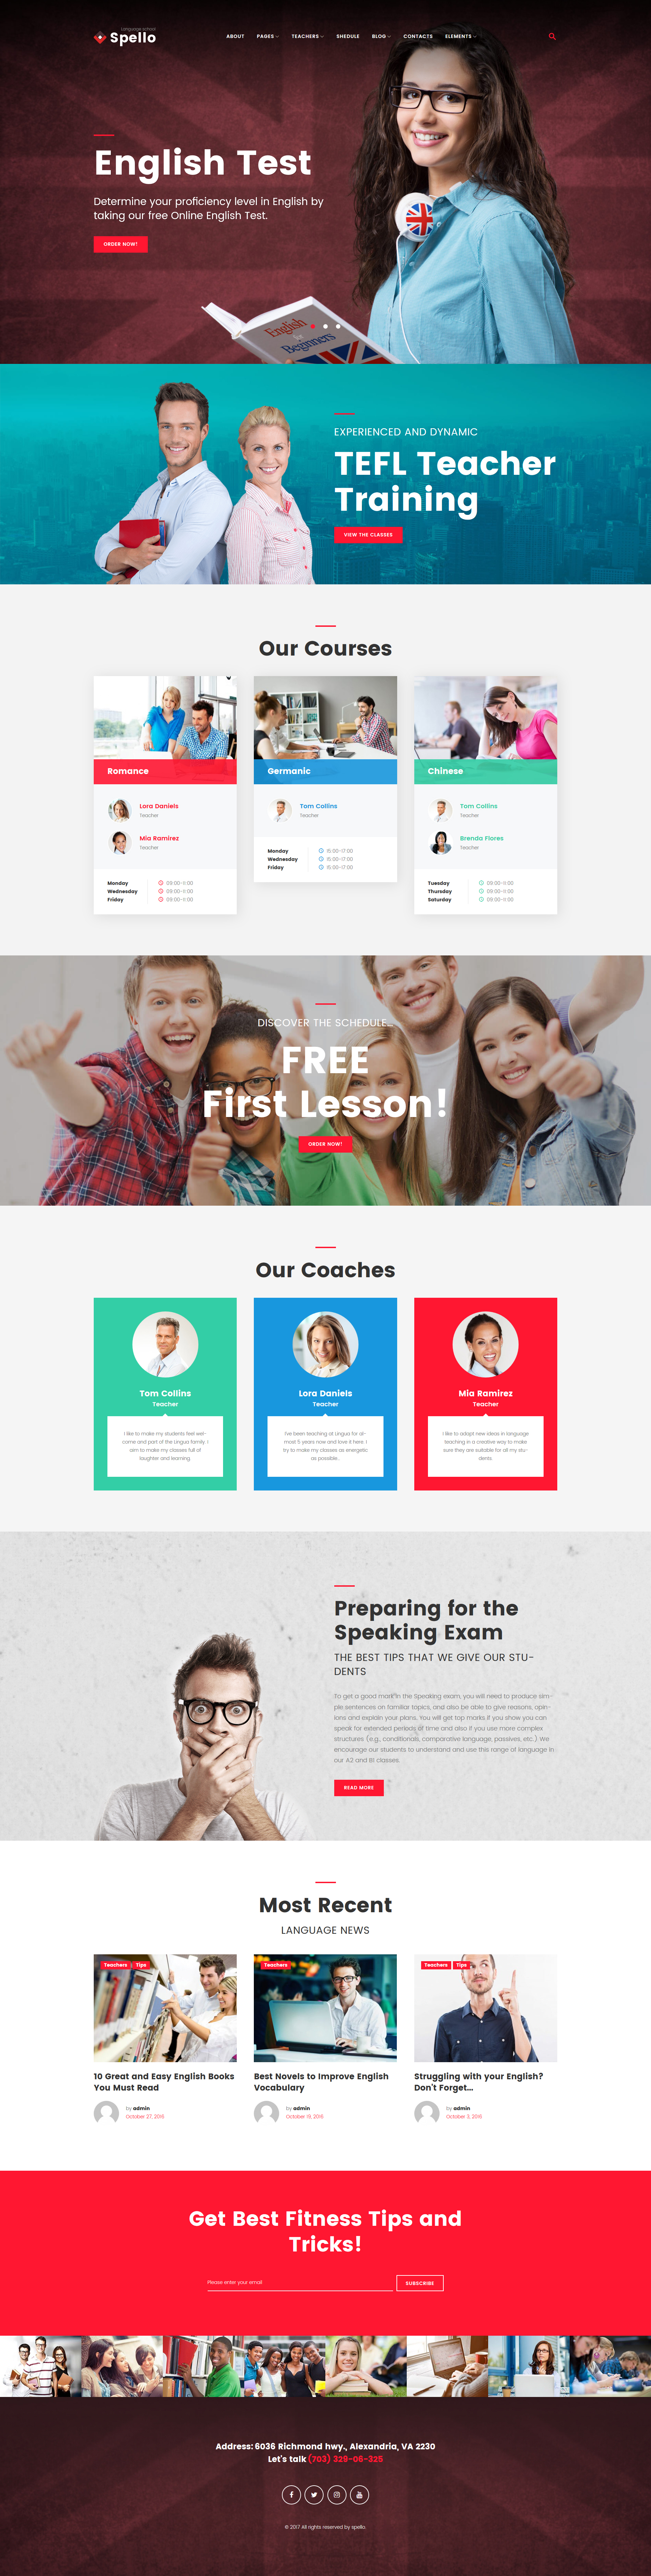 Spello - Language School WordPress Theme - screenshot